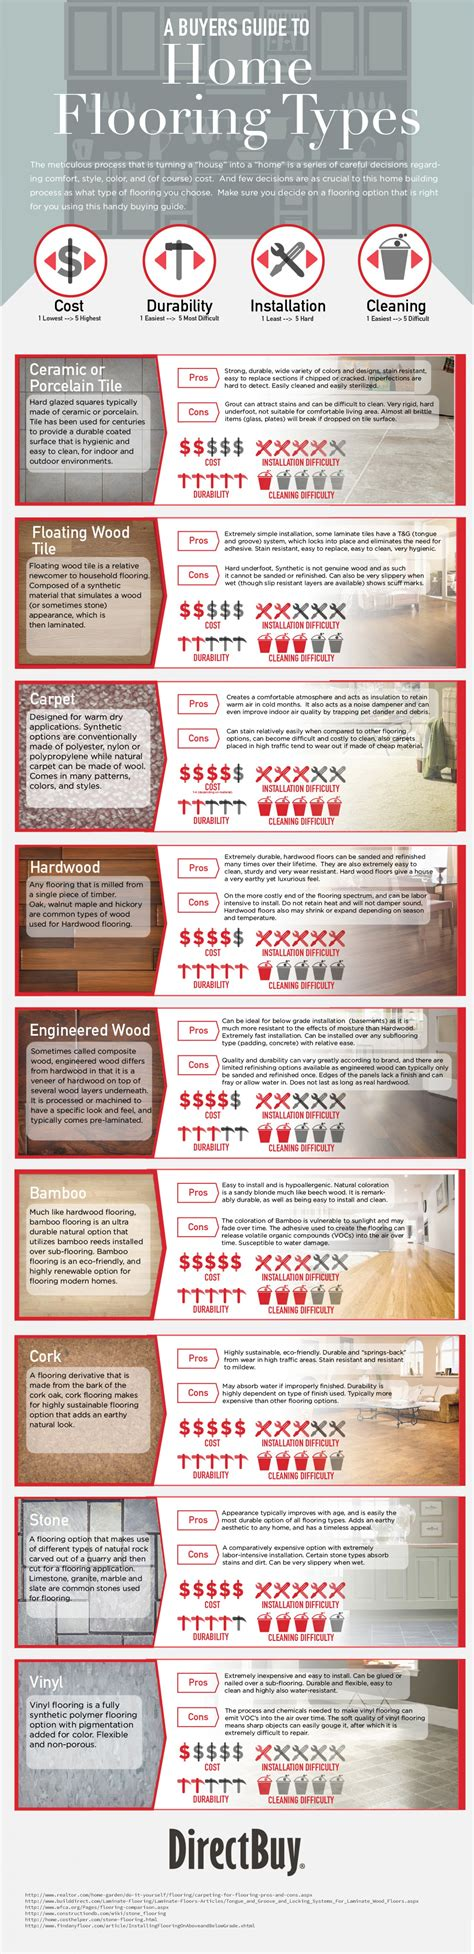 The Pros And Cons Of Different Types Of Home Flooring